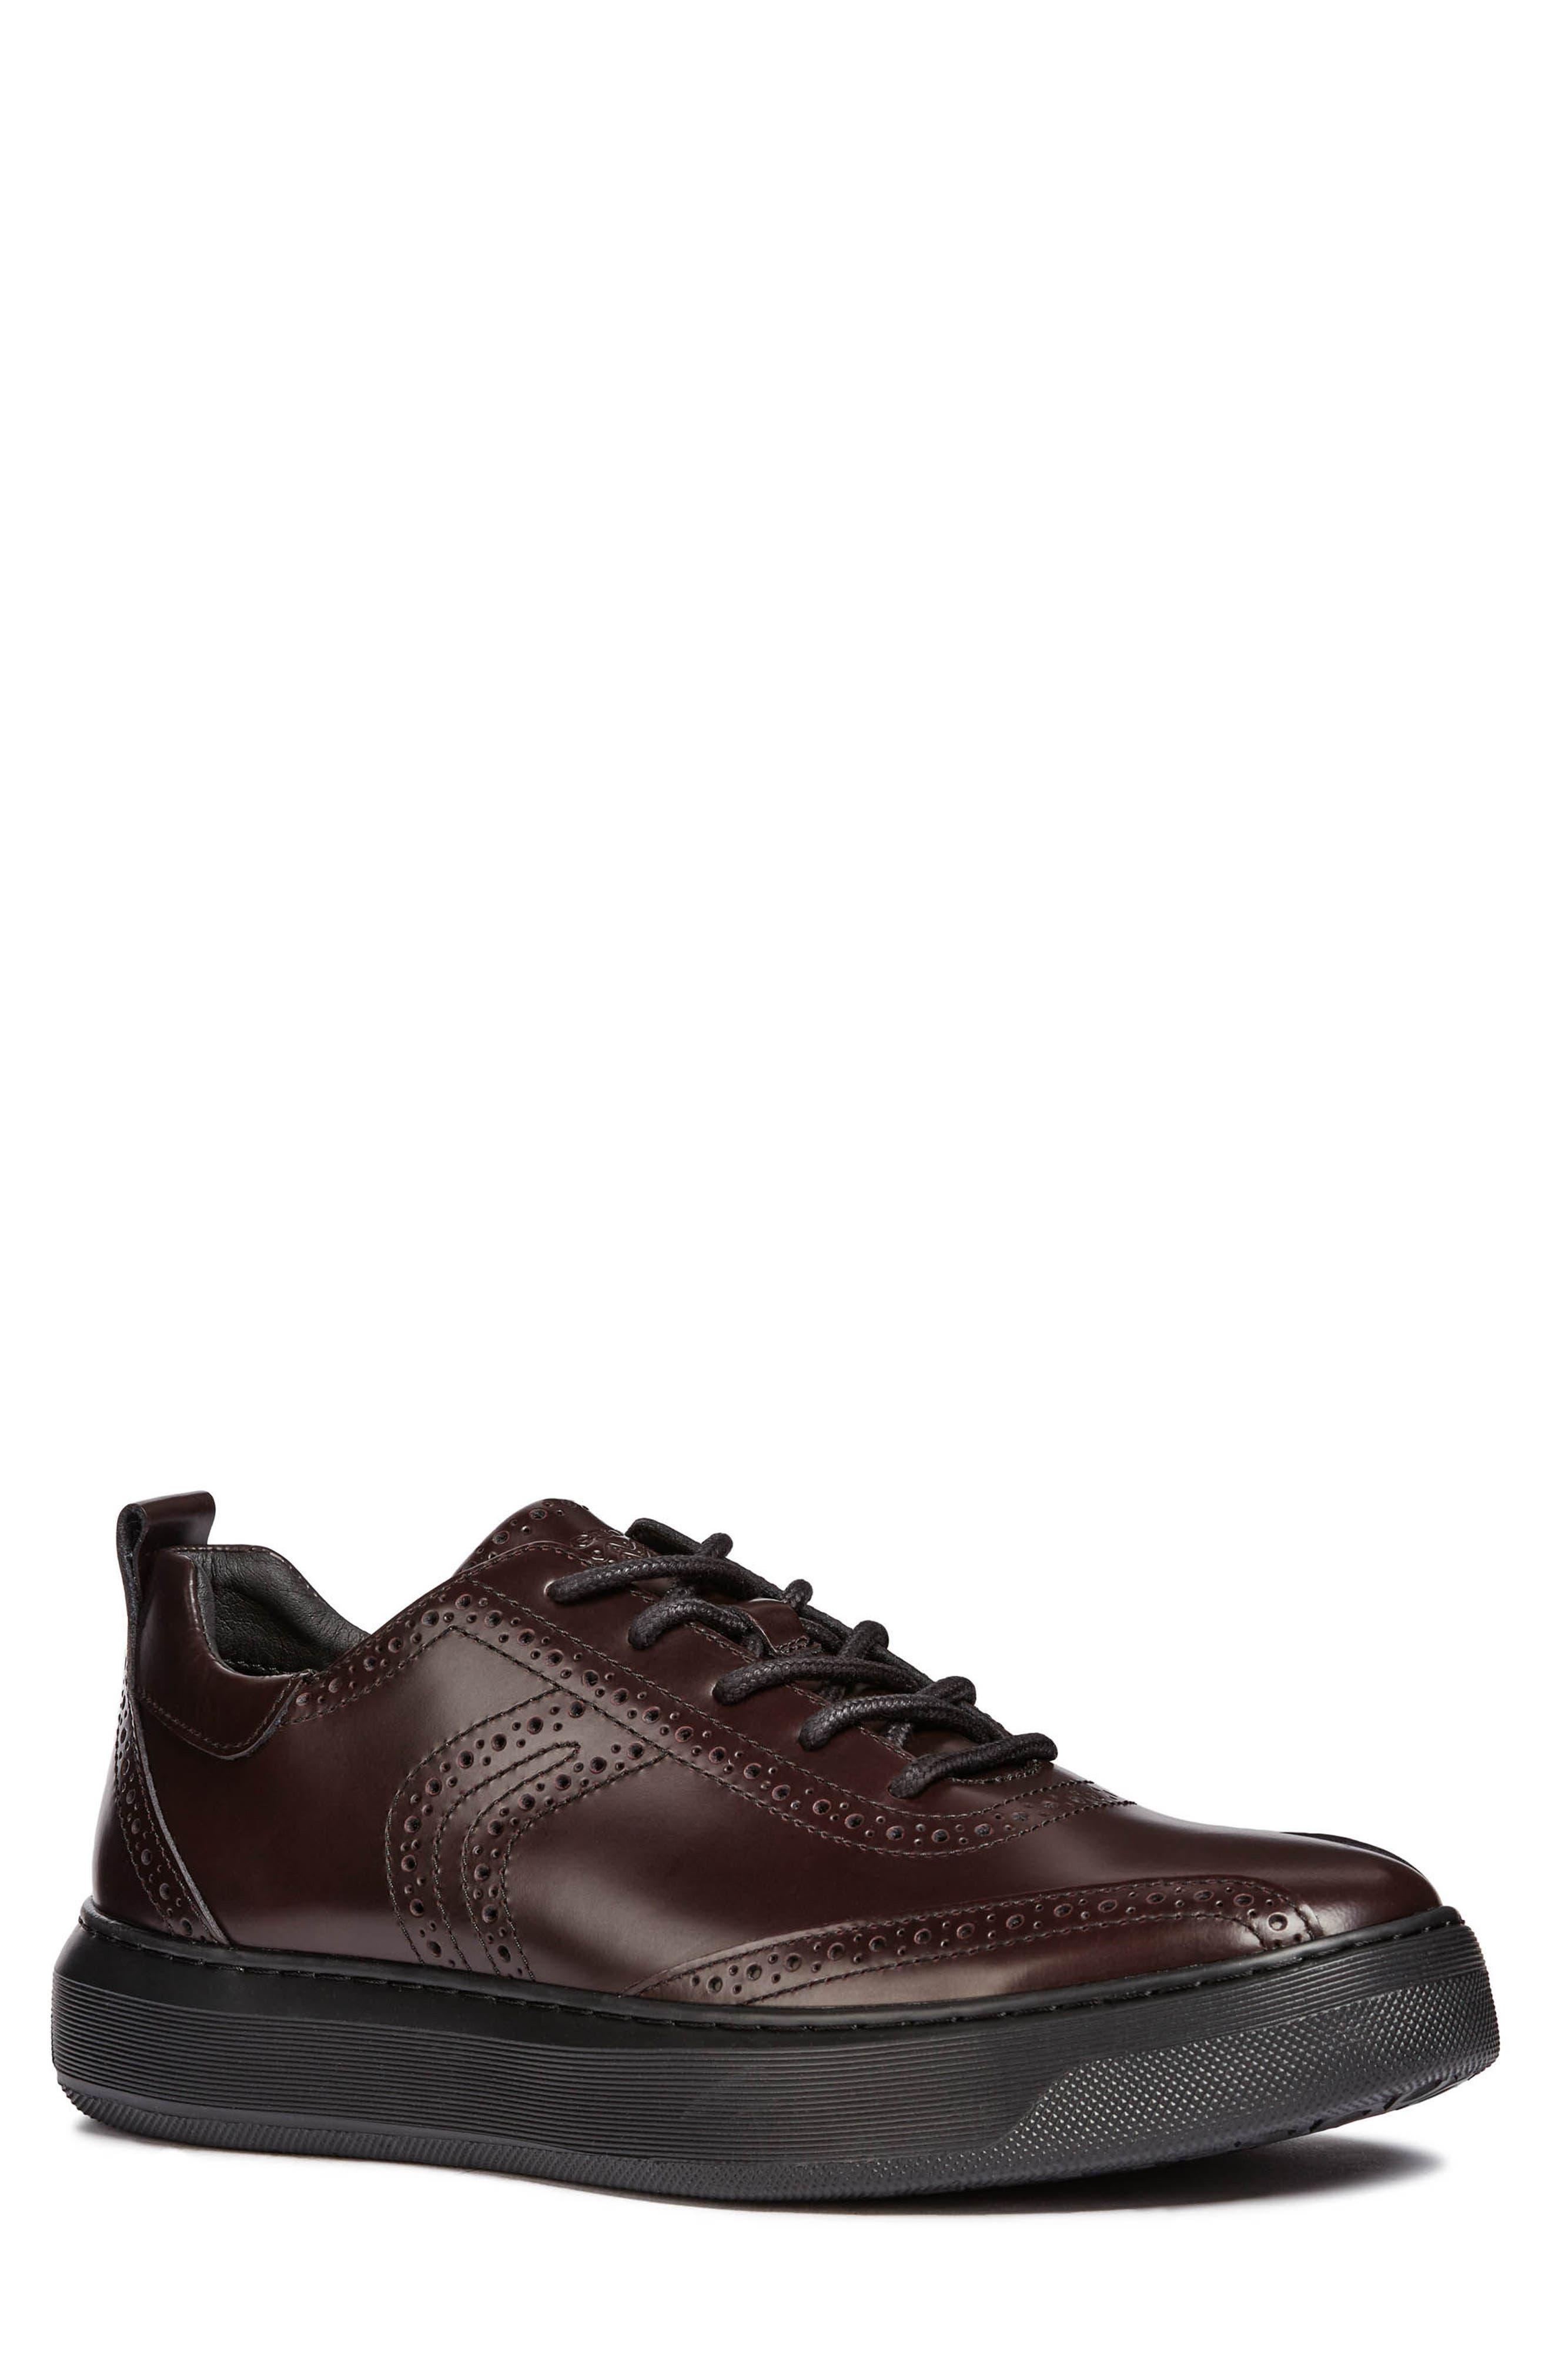 Deiven 10 Brogued Low Top Sneaker,                             Main thumbnail 1, color,                             DARK BURGUNDY LEATHER